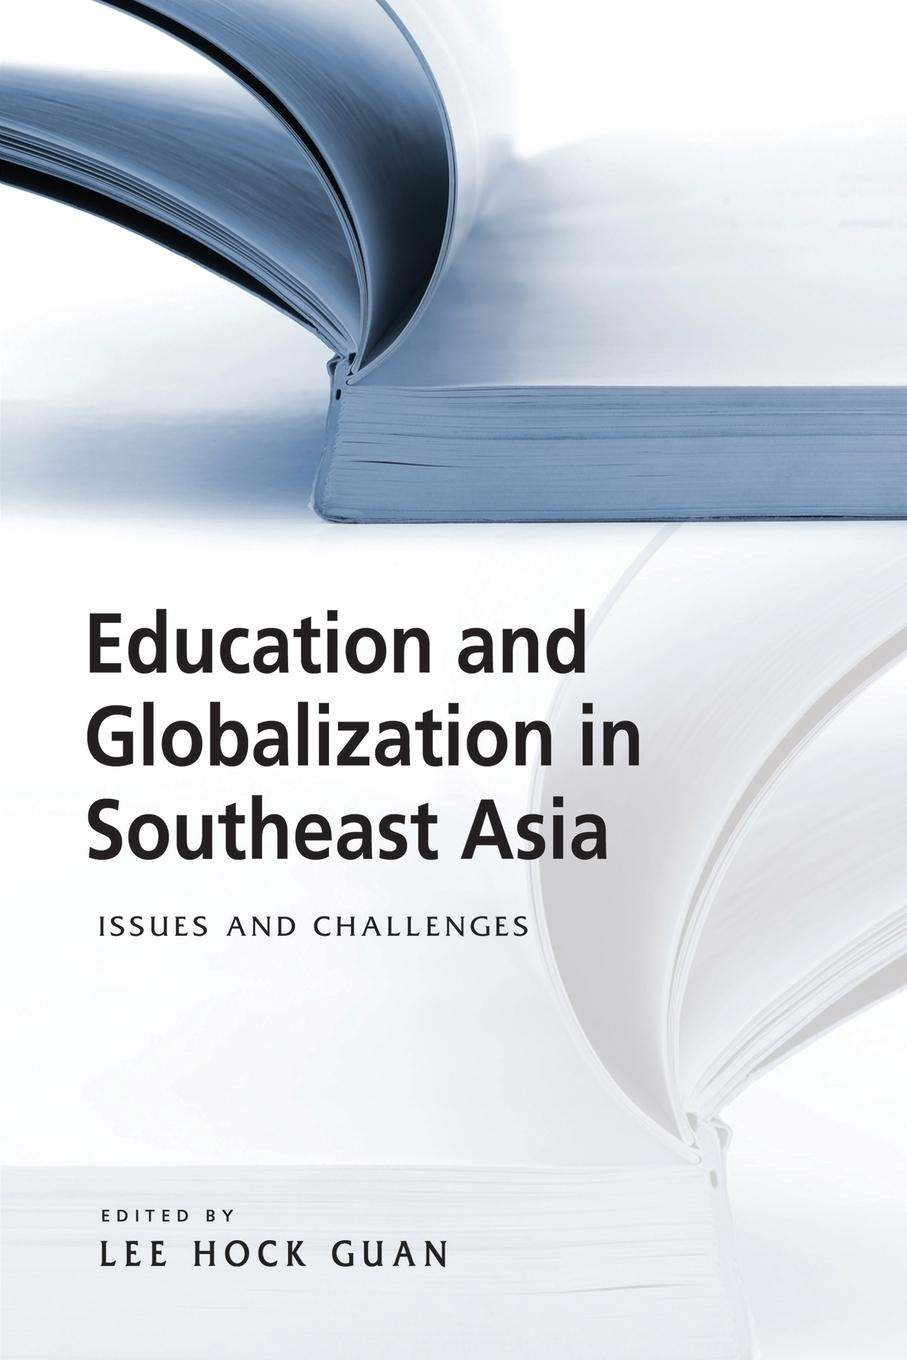 Education and Globalization in Southeast Asia. Issues and Challenges education and globalization in southeast asia issues and challenges